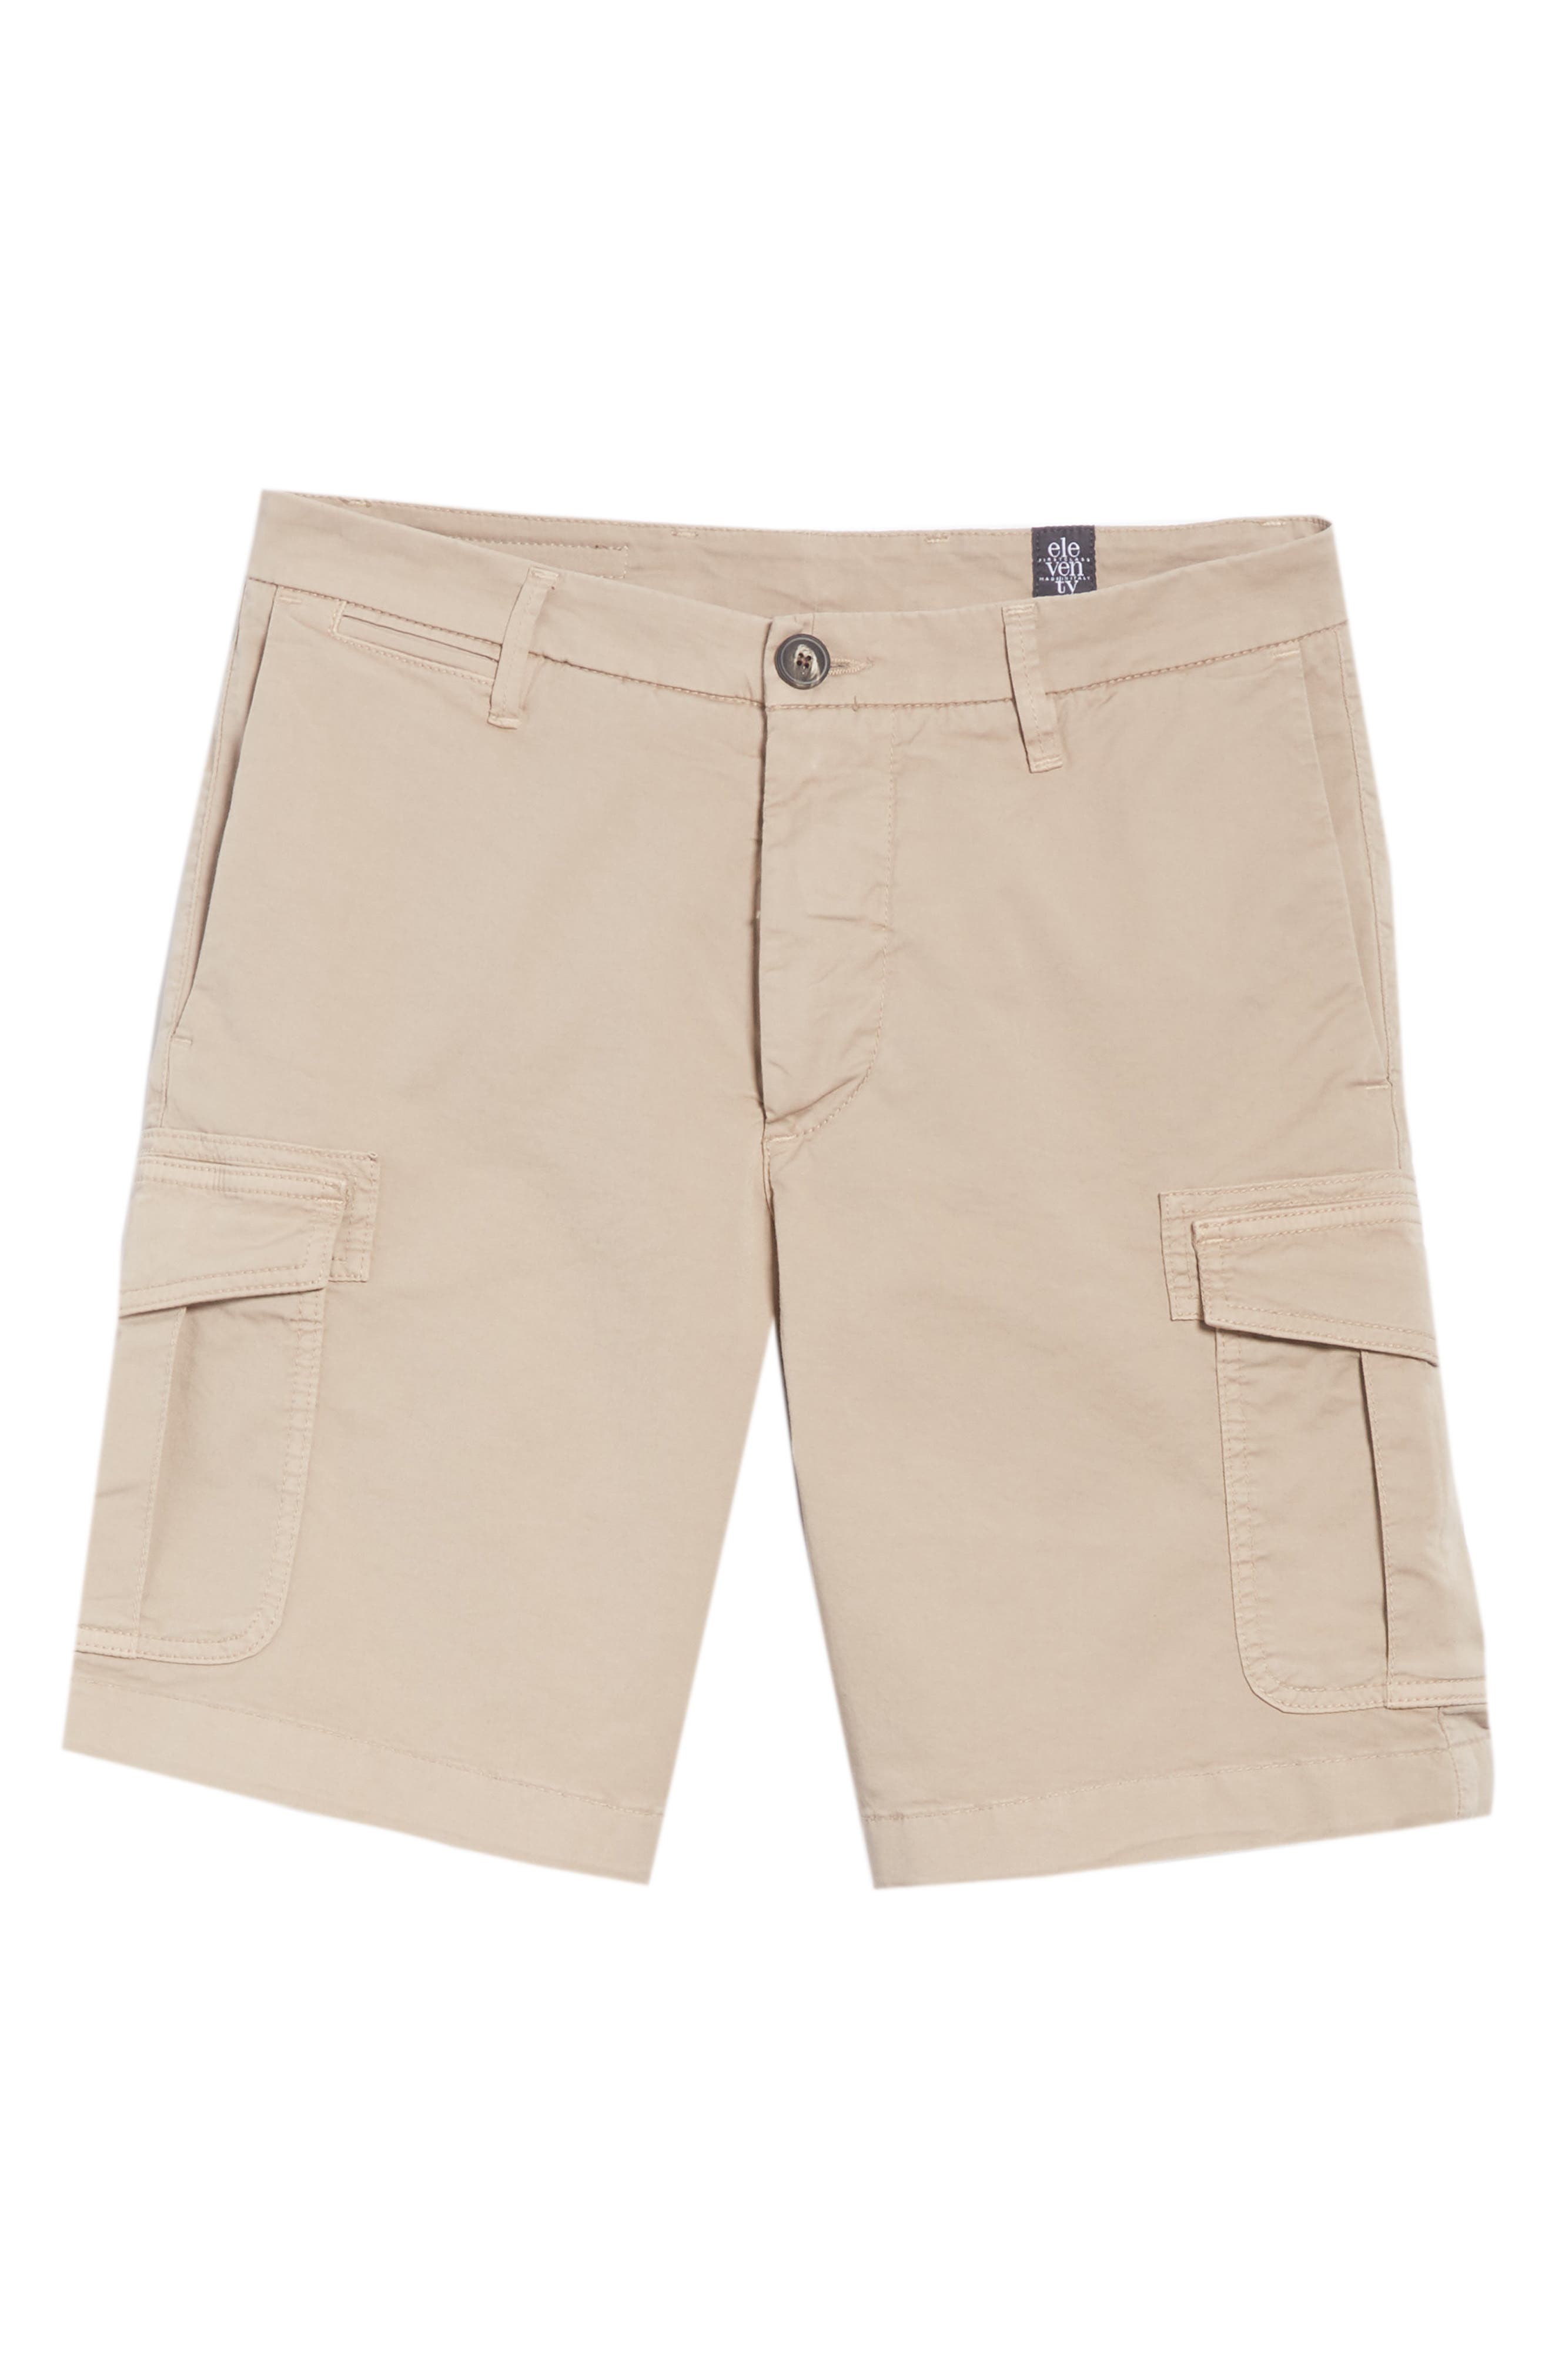 Stretch Cotton Cargo Shorts,                             Alternate thumbnail 6, color,                             Sand